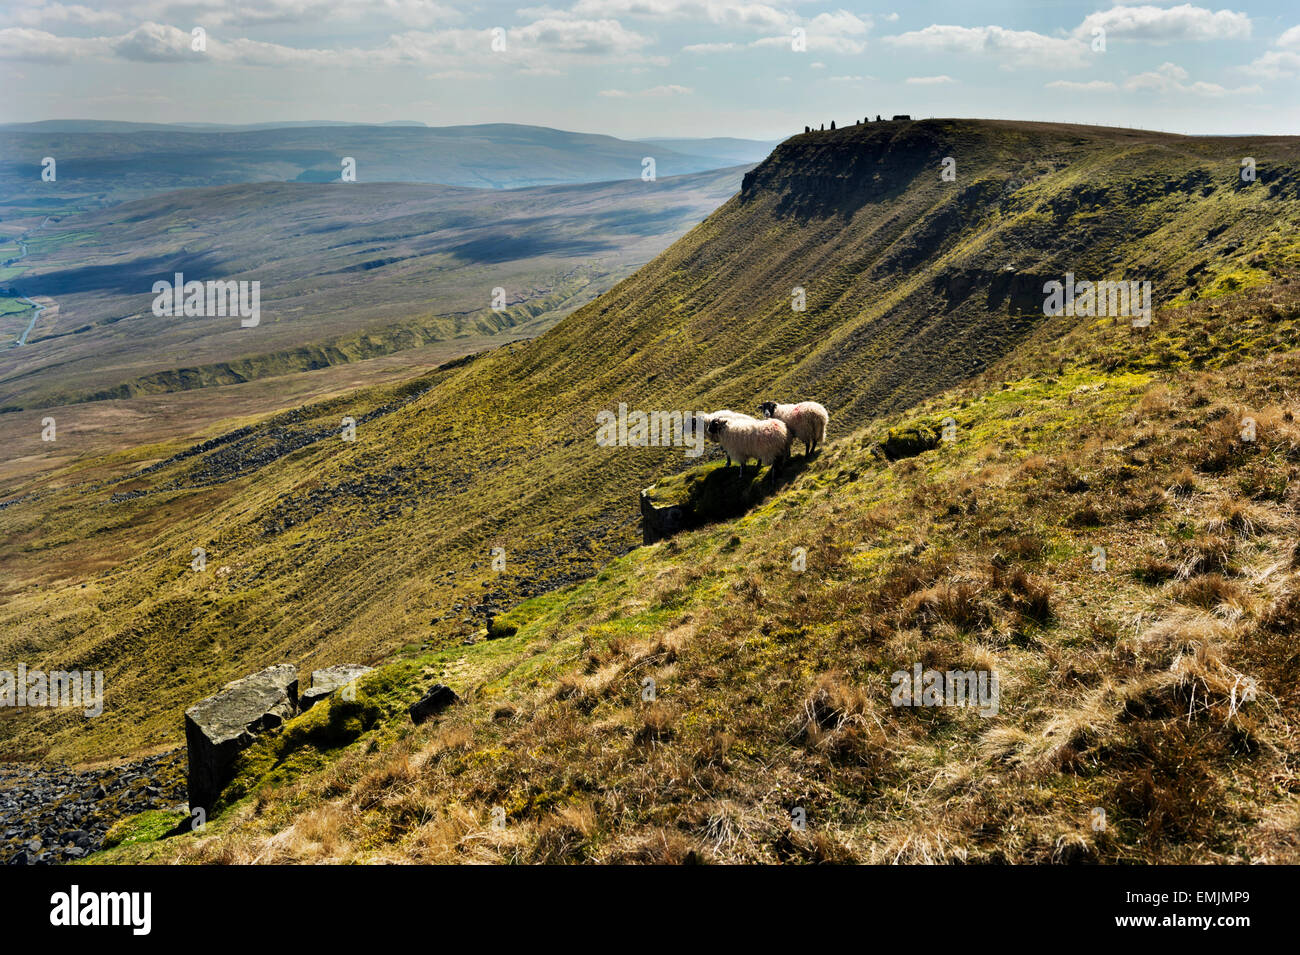 Wild Boar Fell, near Kirkby Stephen, Eden Valley, Cumbria, UK, with grazing sheep. A popular destination for walkers. - Stock Image